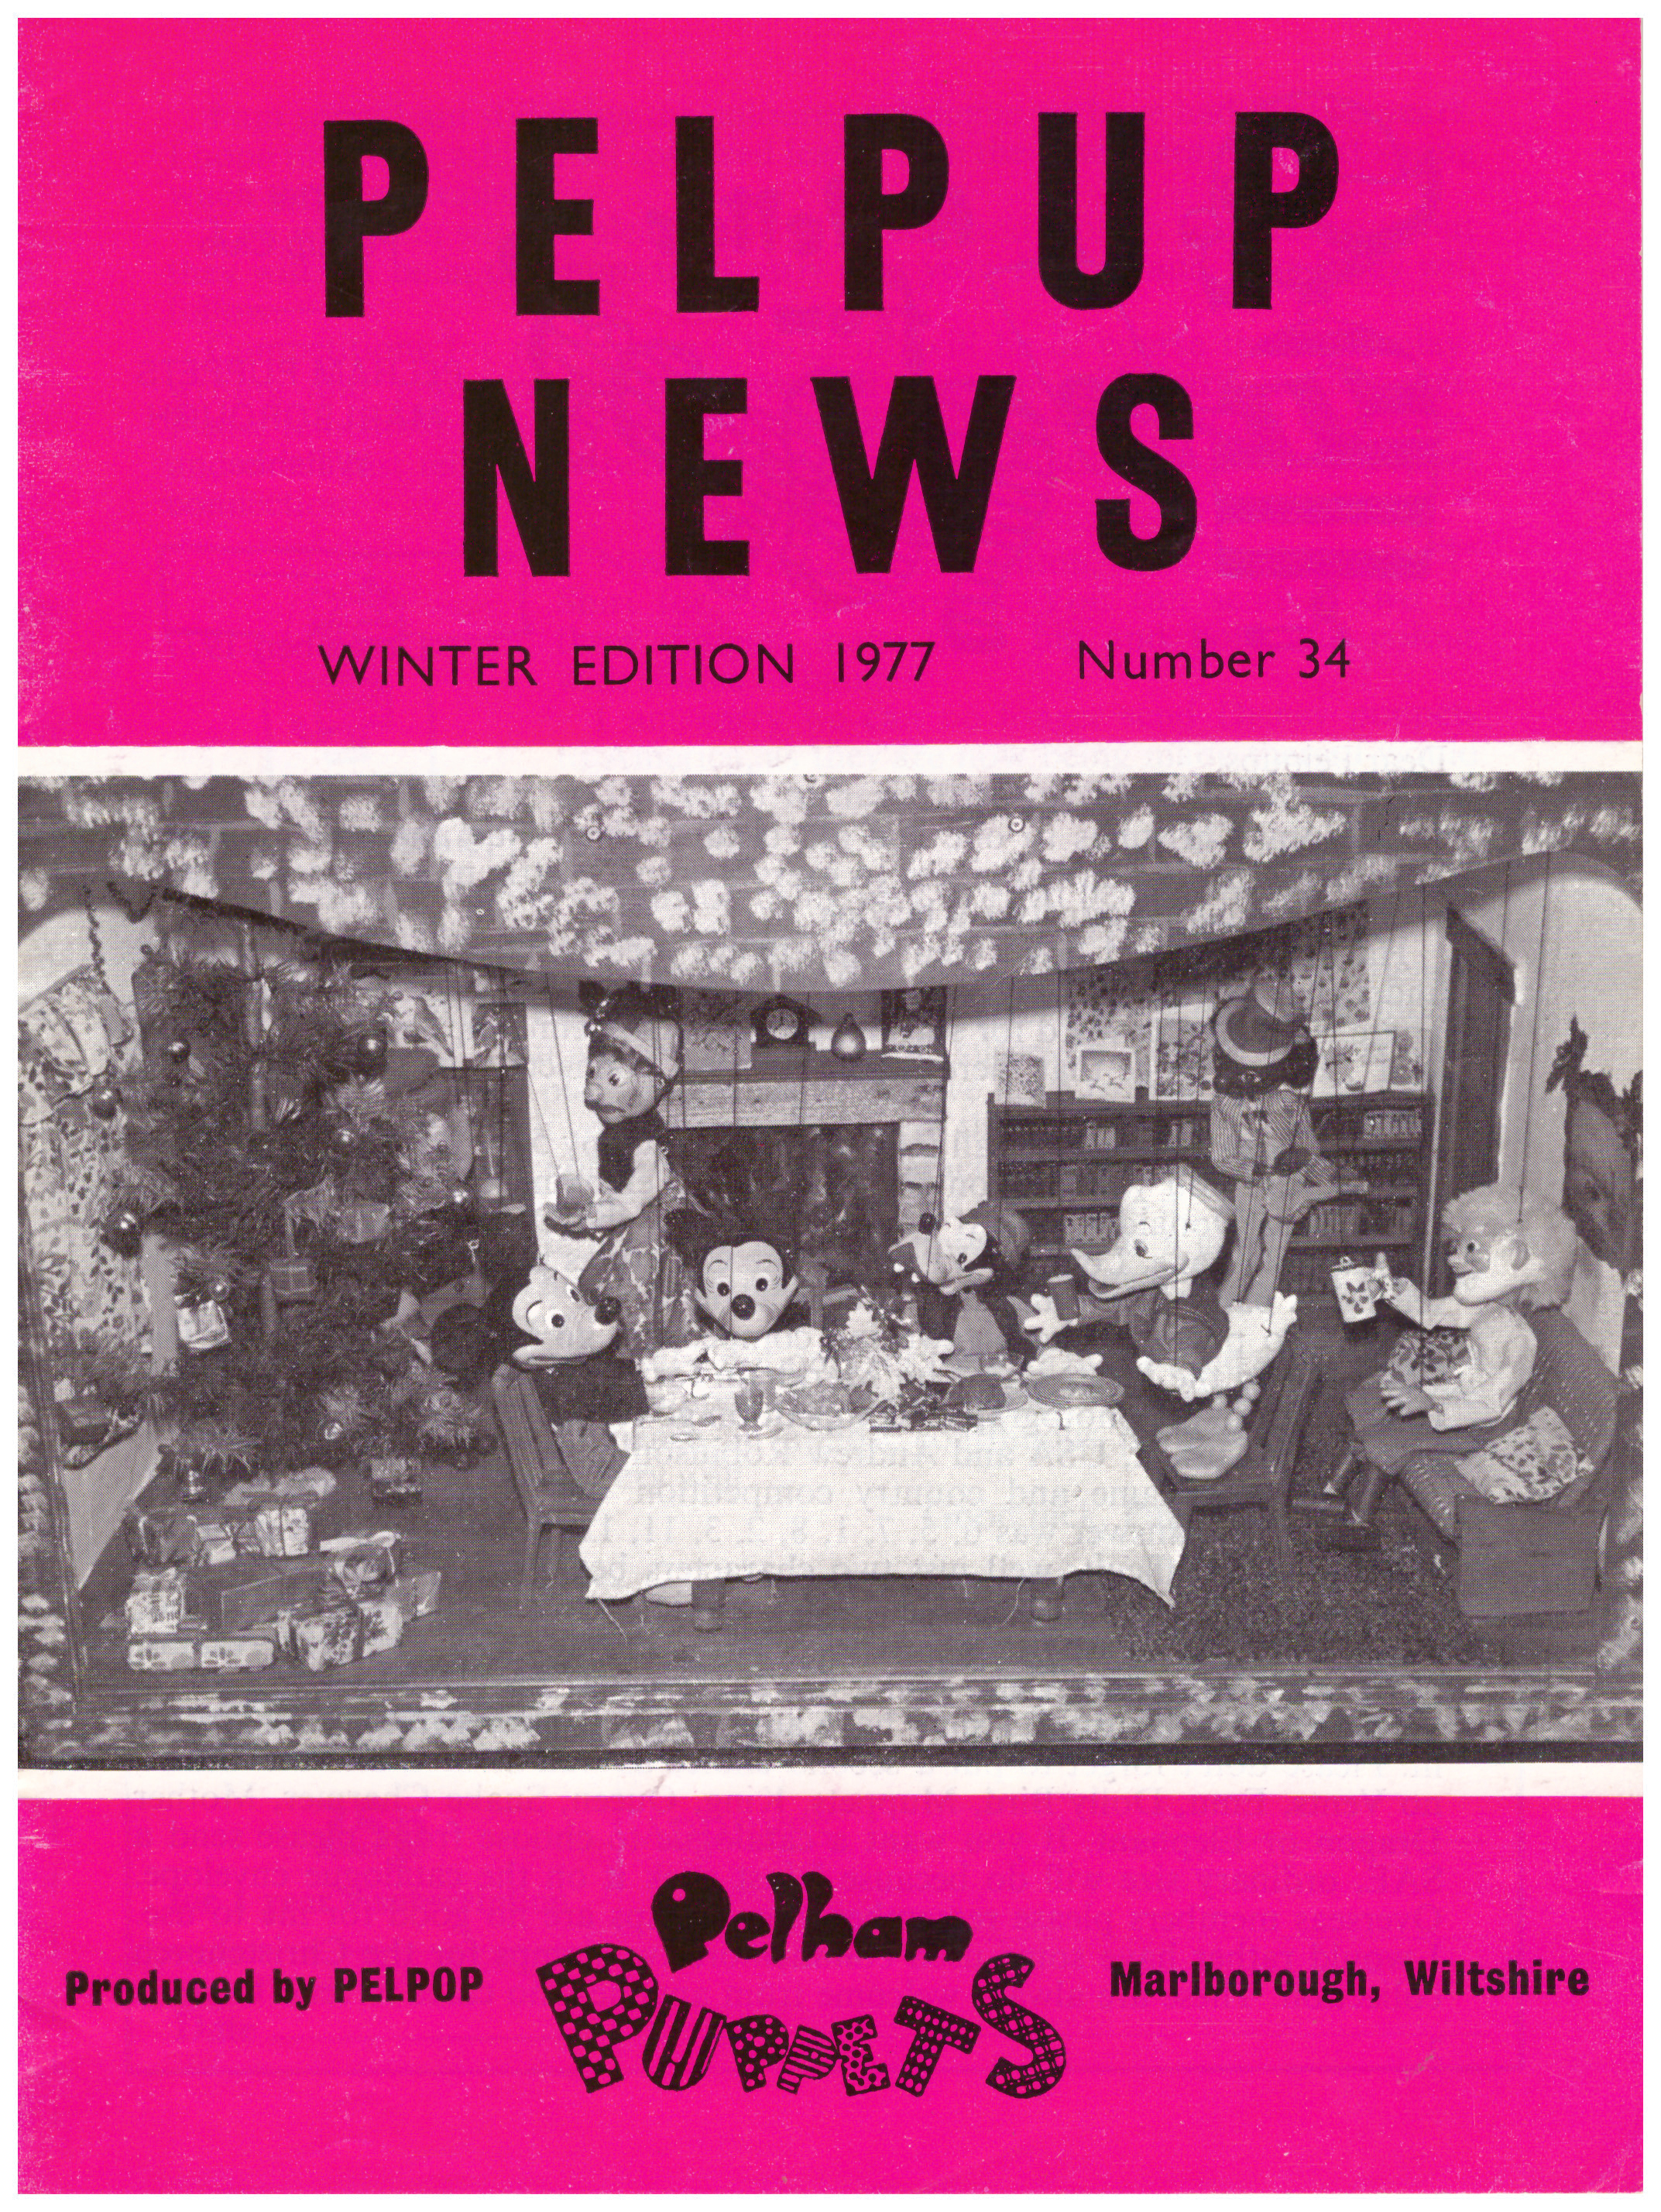 Winter Edition 1977 Number 34